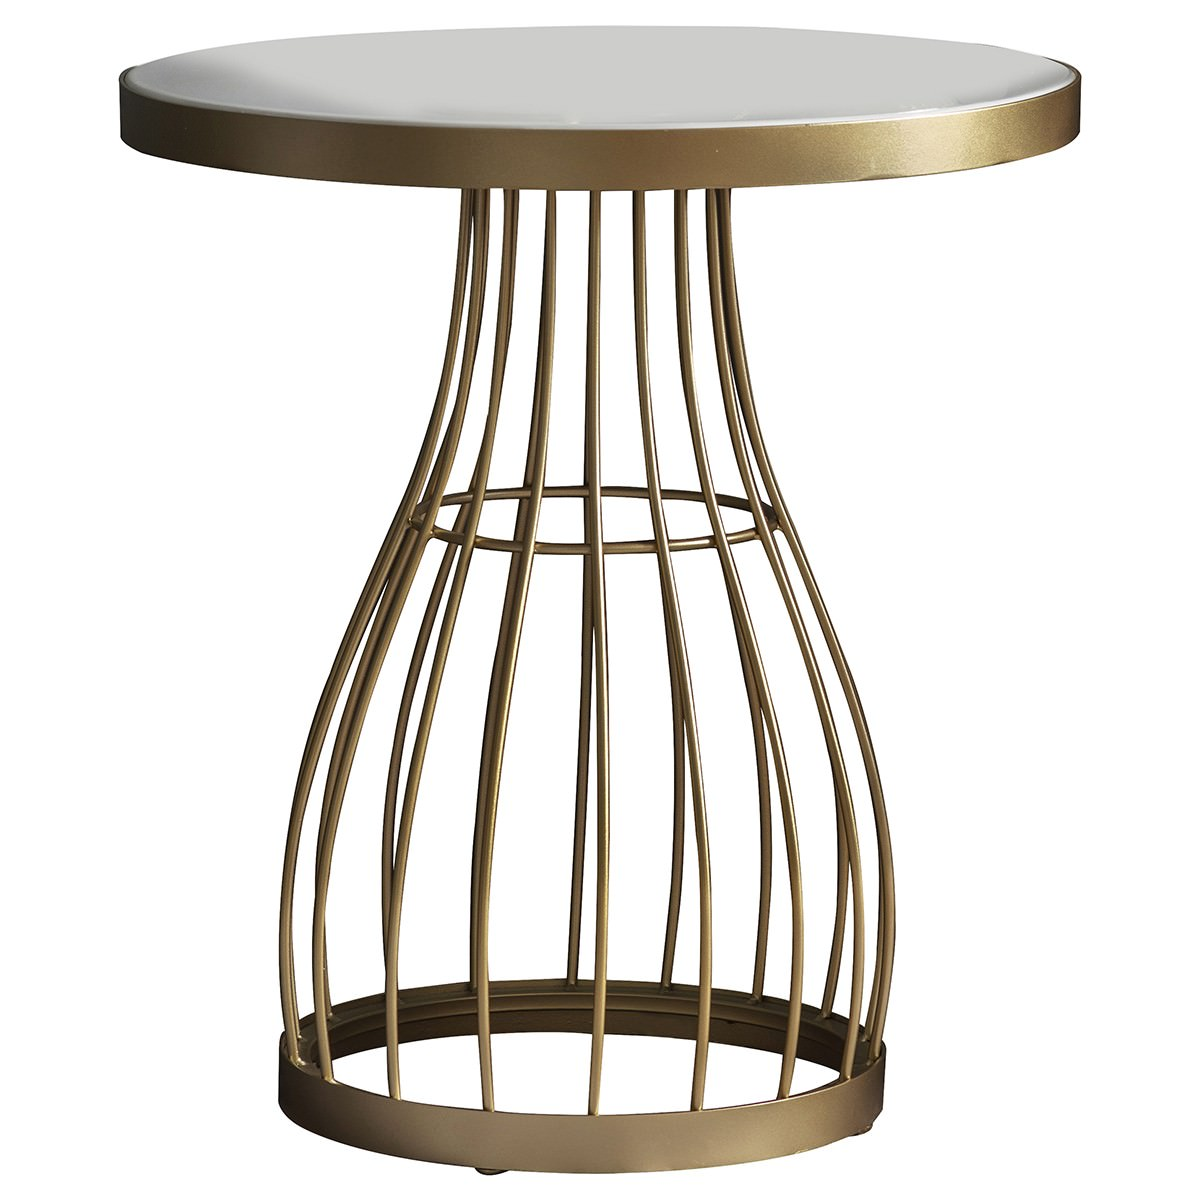 Paddy Metal Round Side Table, White / Champagne Gold